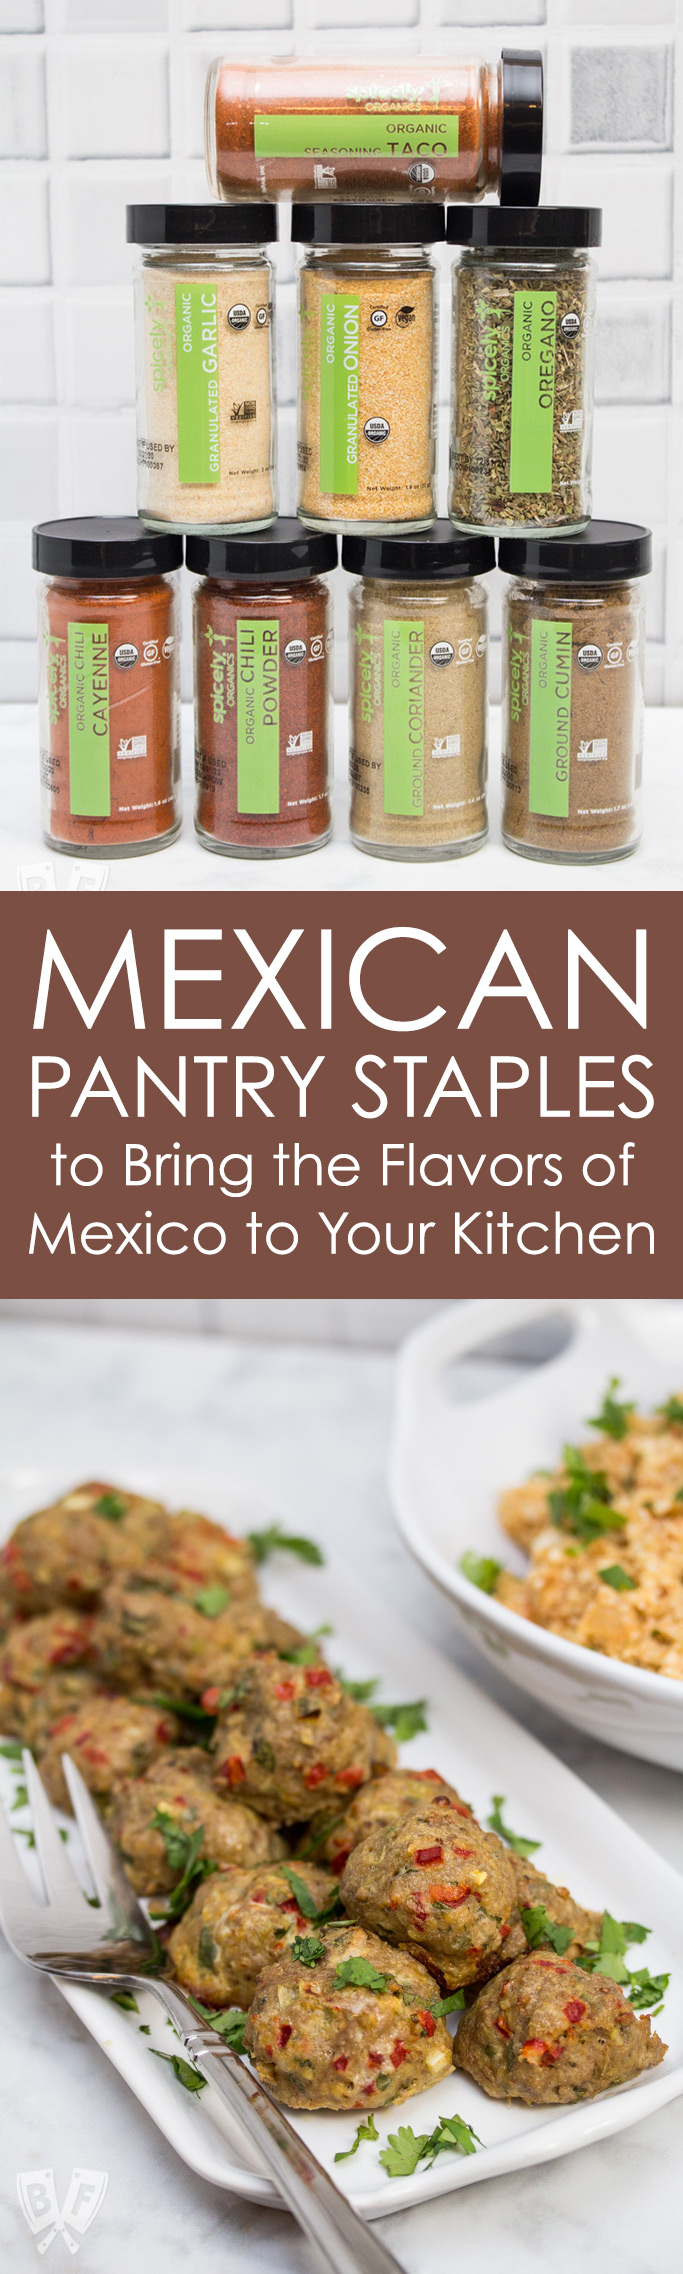 2 photos - an assortment of organic Mexican spice jars, stacked on top of each other and a platter of Tex-Mex Meatballs with Mexican with a bowl of Cauliflower Rice.